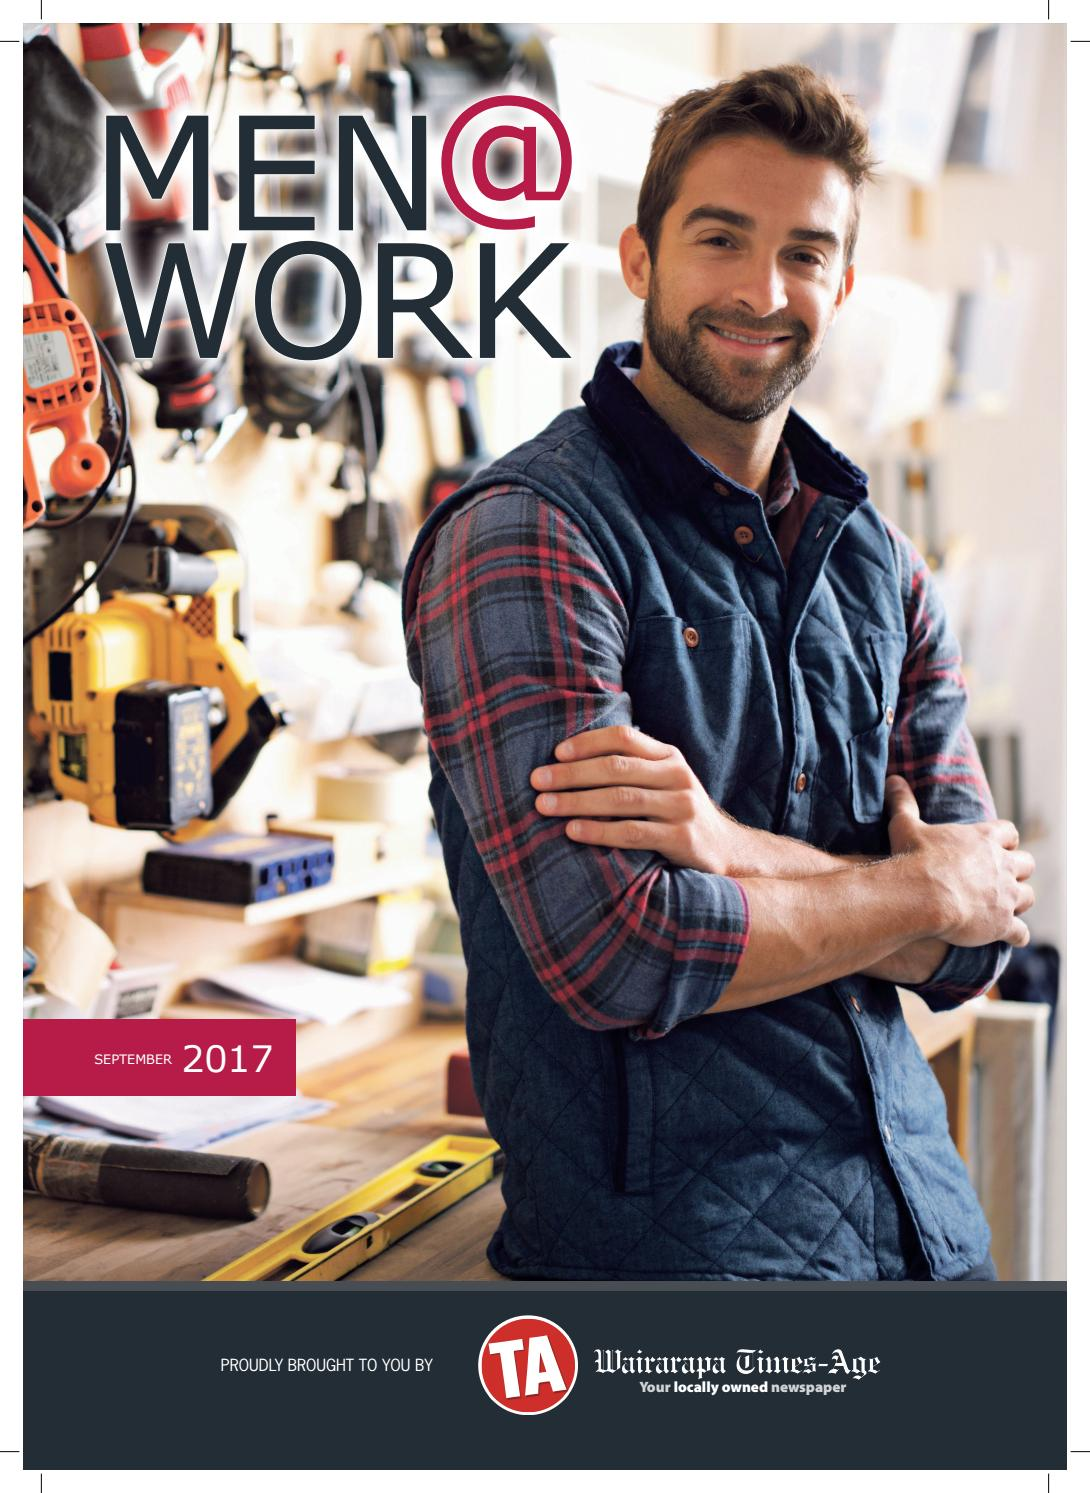 Men At Work 2017 By Wairarapa Times Age Issuu